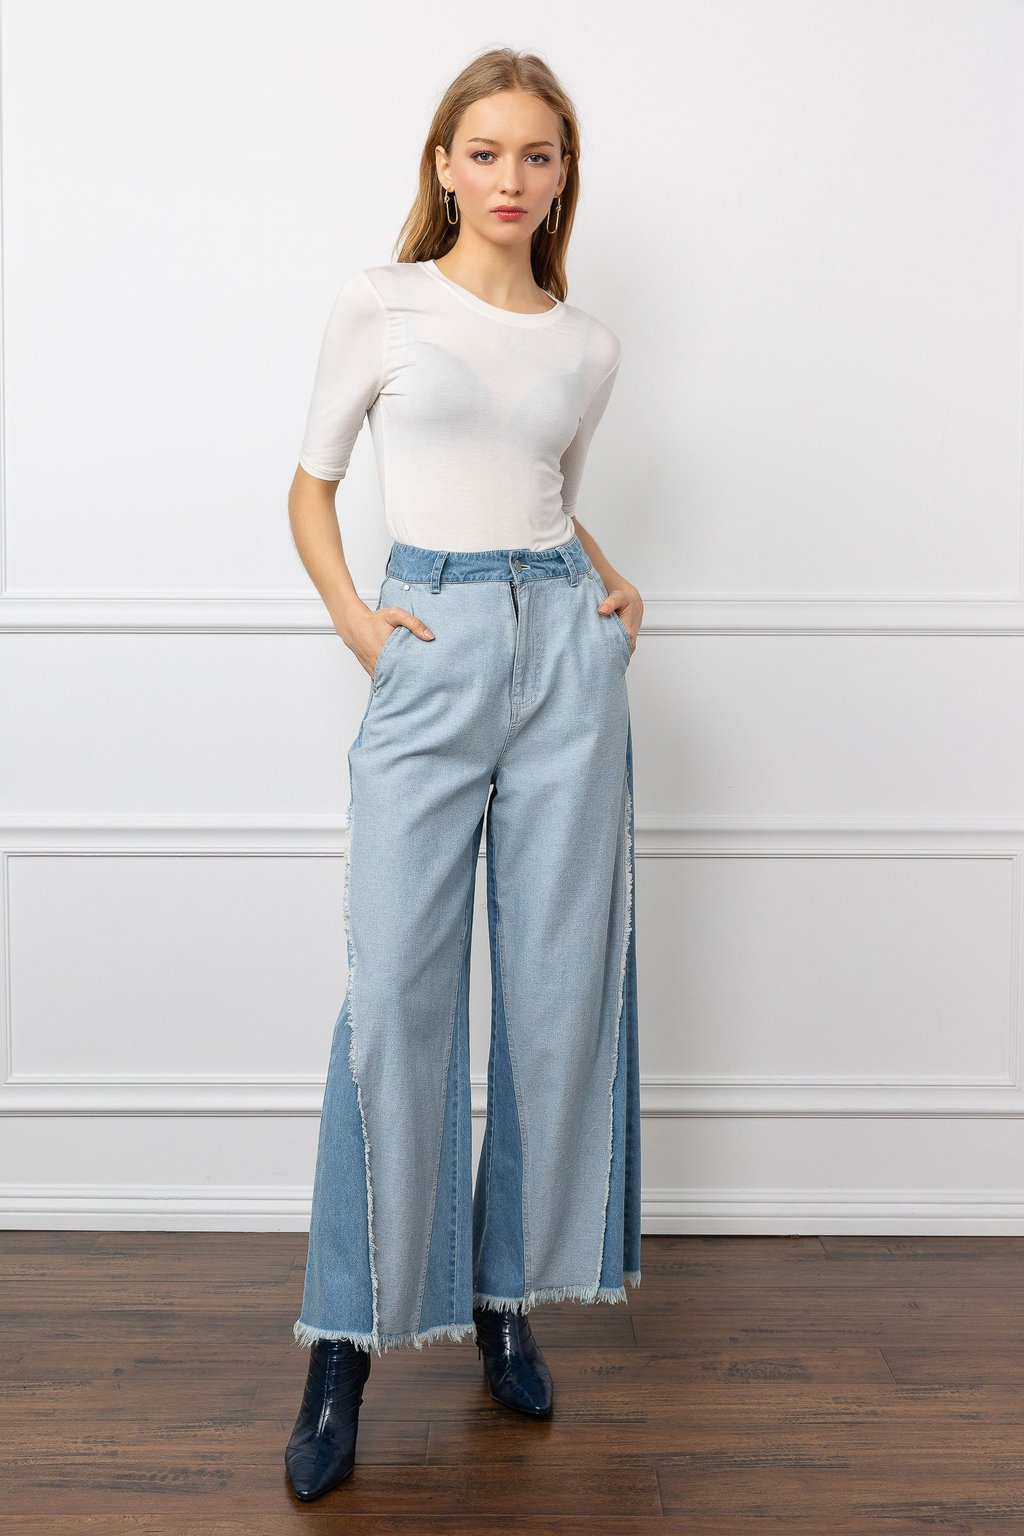 Adelaide Pants by J.ING